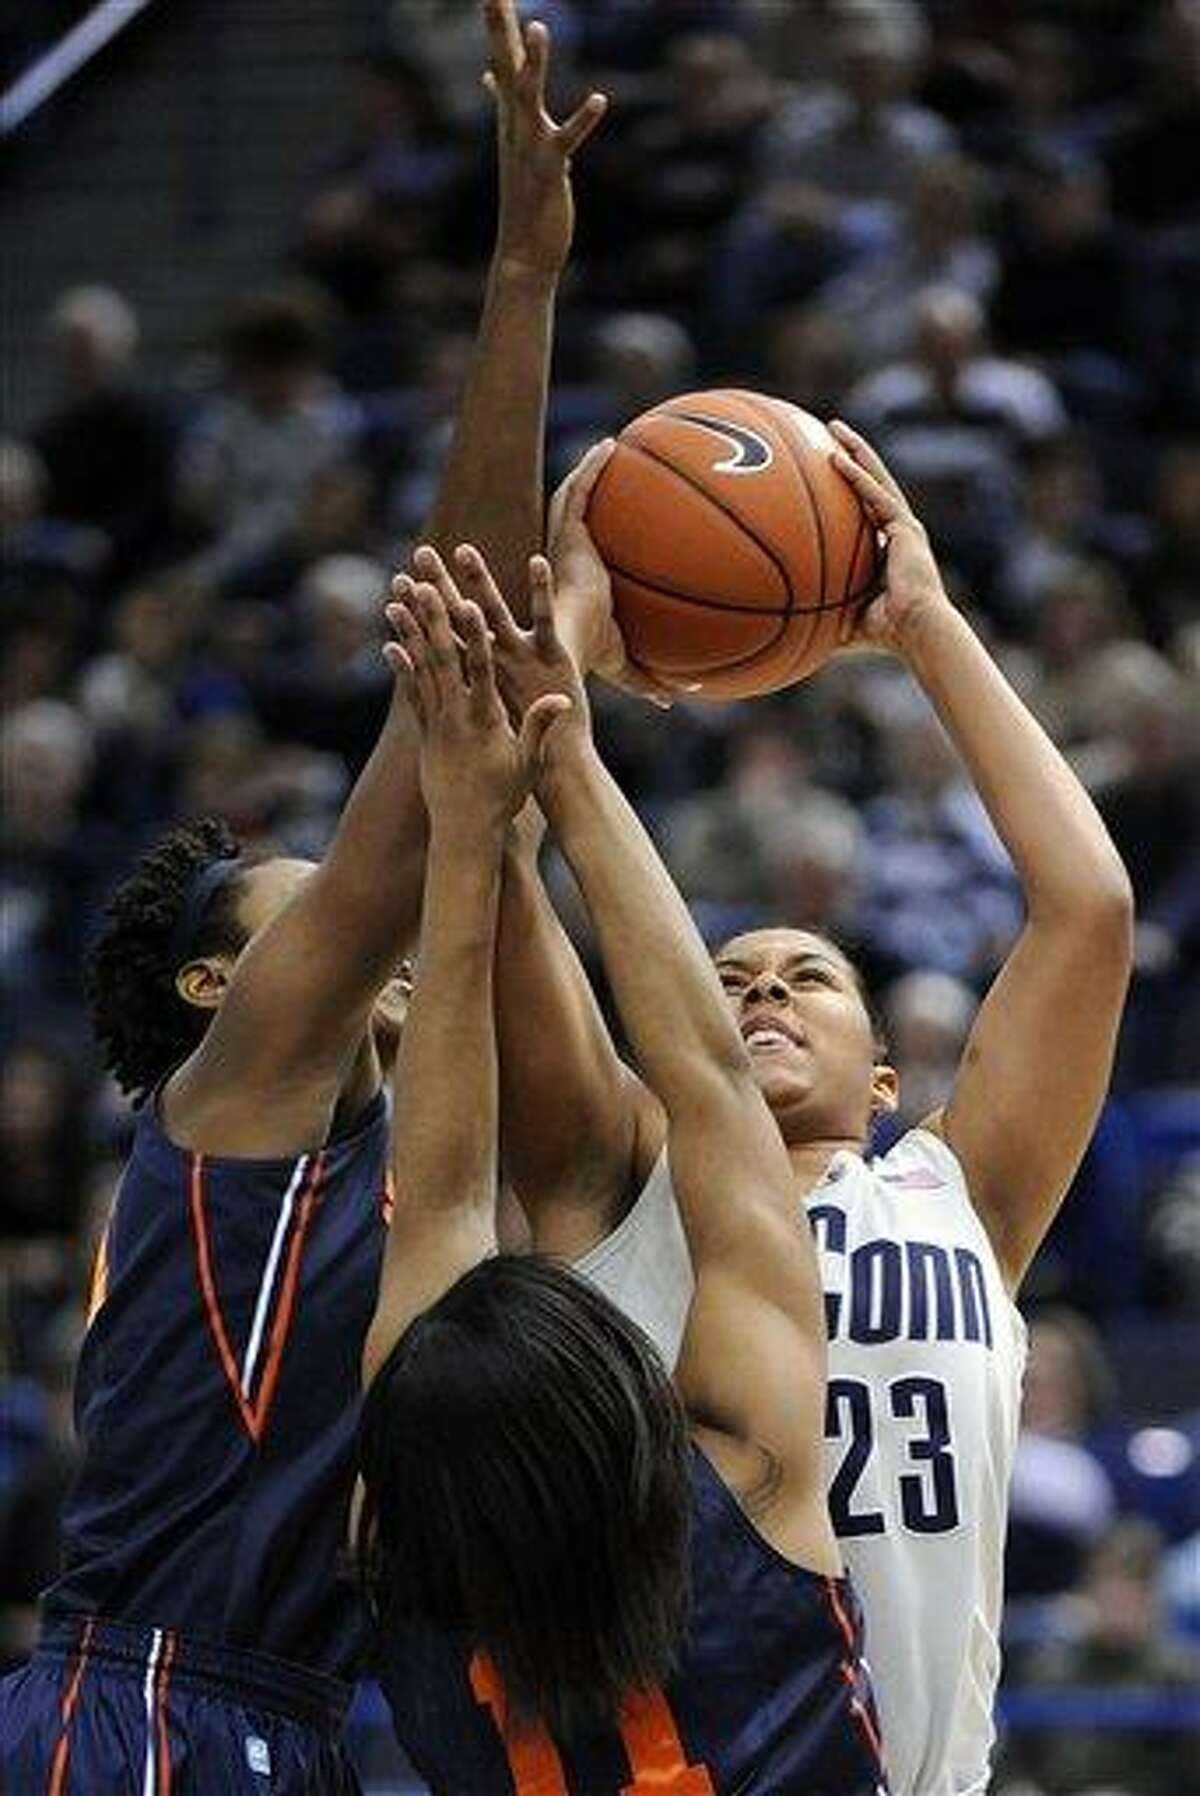 Connecticut's Kaleena Mosqueda-Lewis, right, is guarded by Syracuse's Kayla Alexander, left, and Cornelia Foundren during the first half of an NCAA college basketball game in Hartford, Conn., Saturday, Jan. 19, 2013. (AP Photo/Fred Beckham)